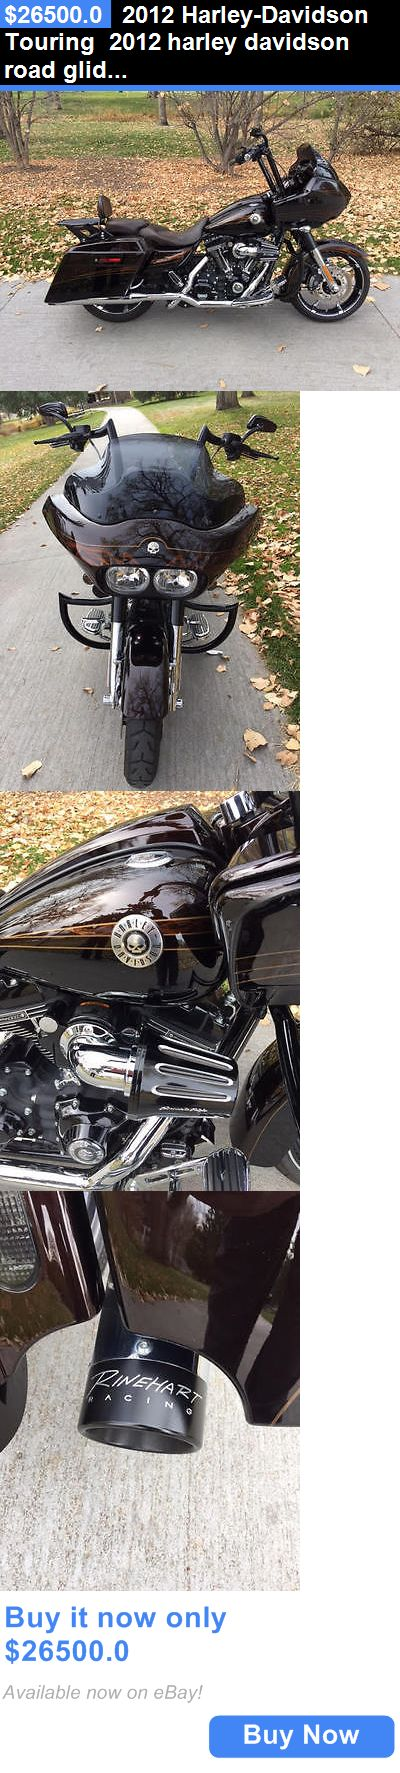 Motorcycles: 2012 Harley-Davidson Touring 2012 Harley Davidson Road Glide Cvo BUY IT NOW ONLY: $26500.0